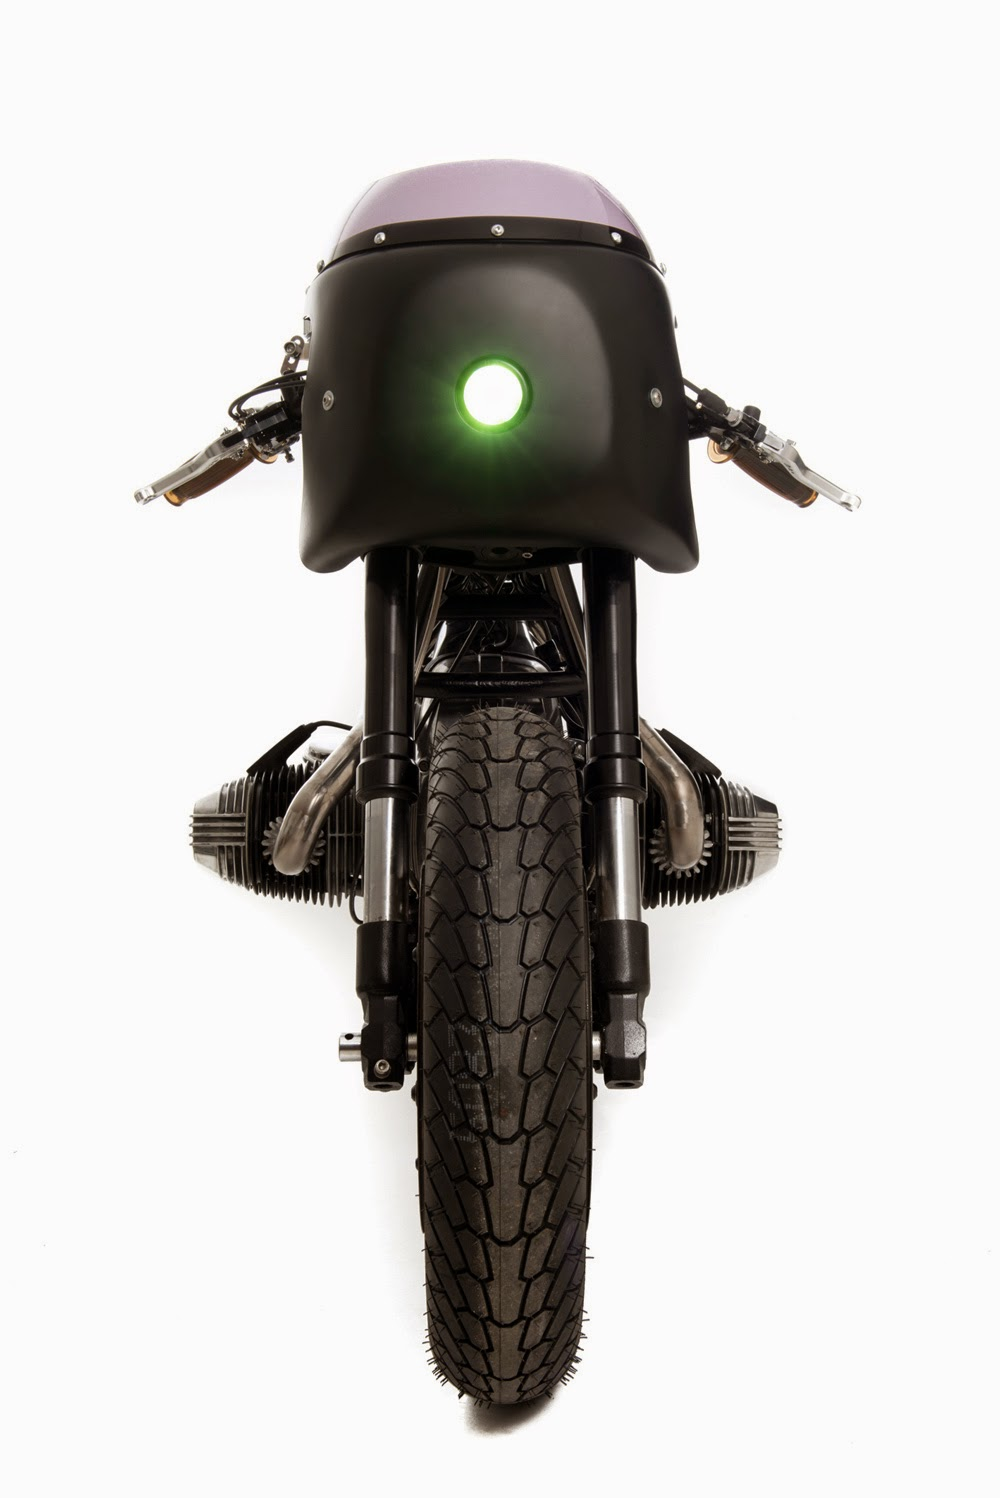 BMW R 65 Cafe Racer by Ed.Turner Motorcycles